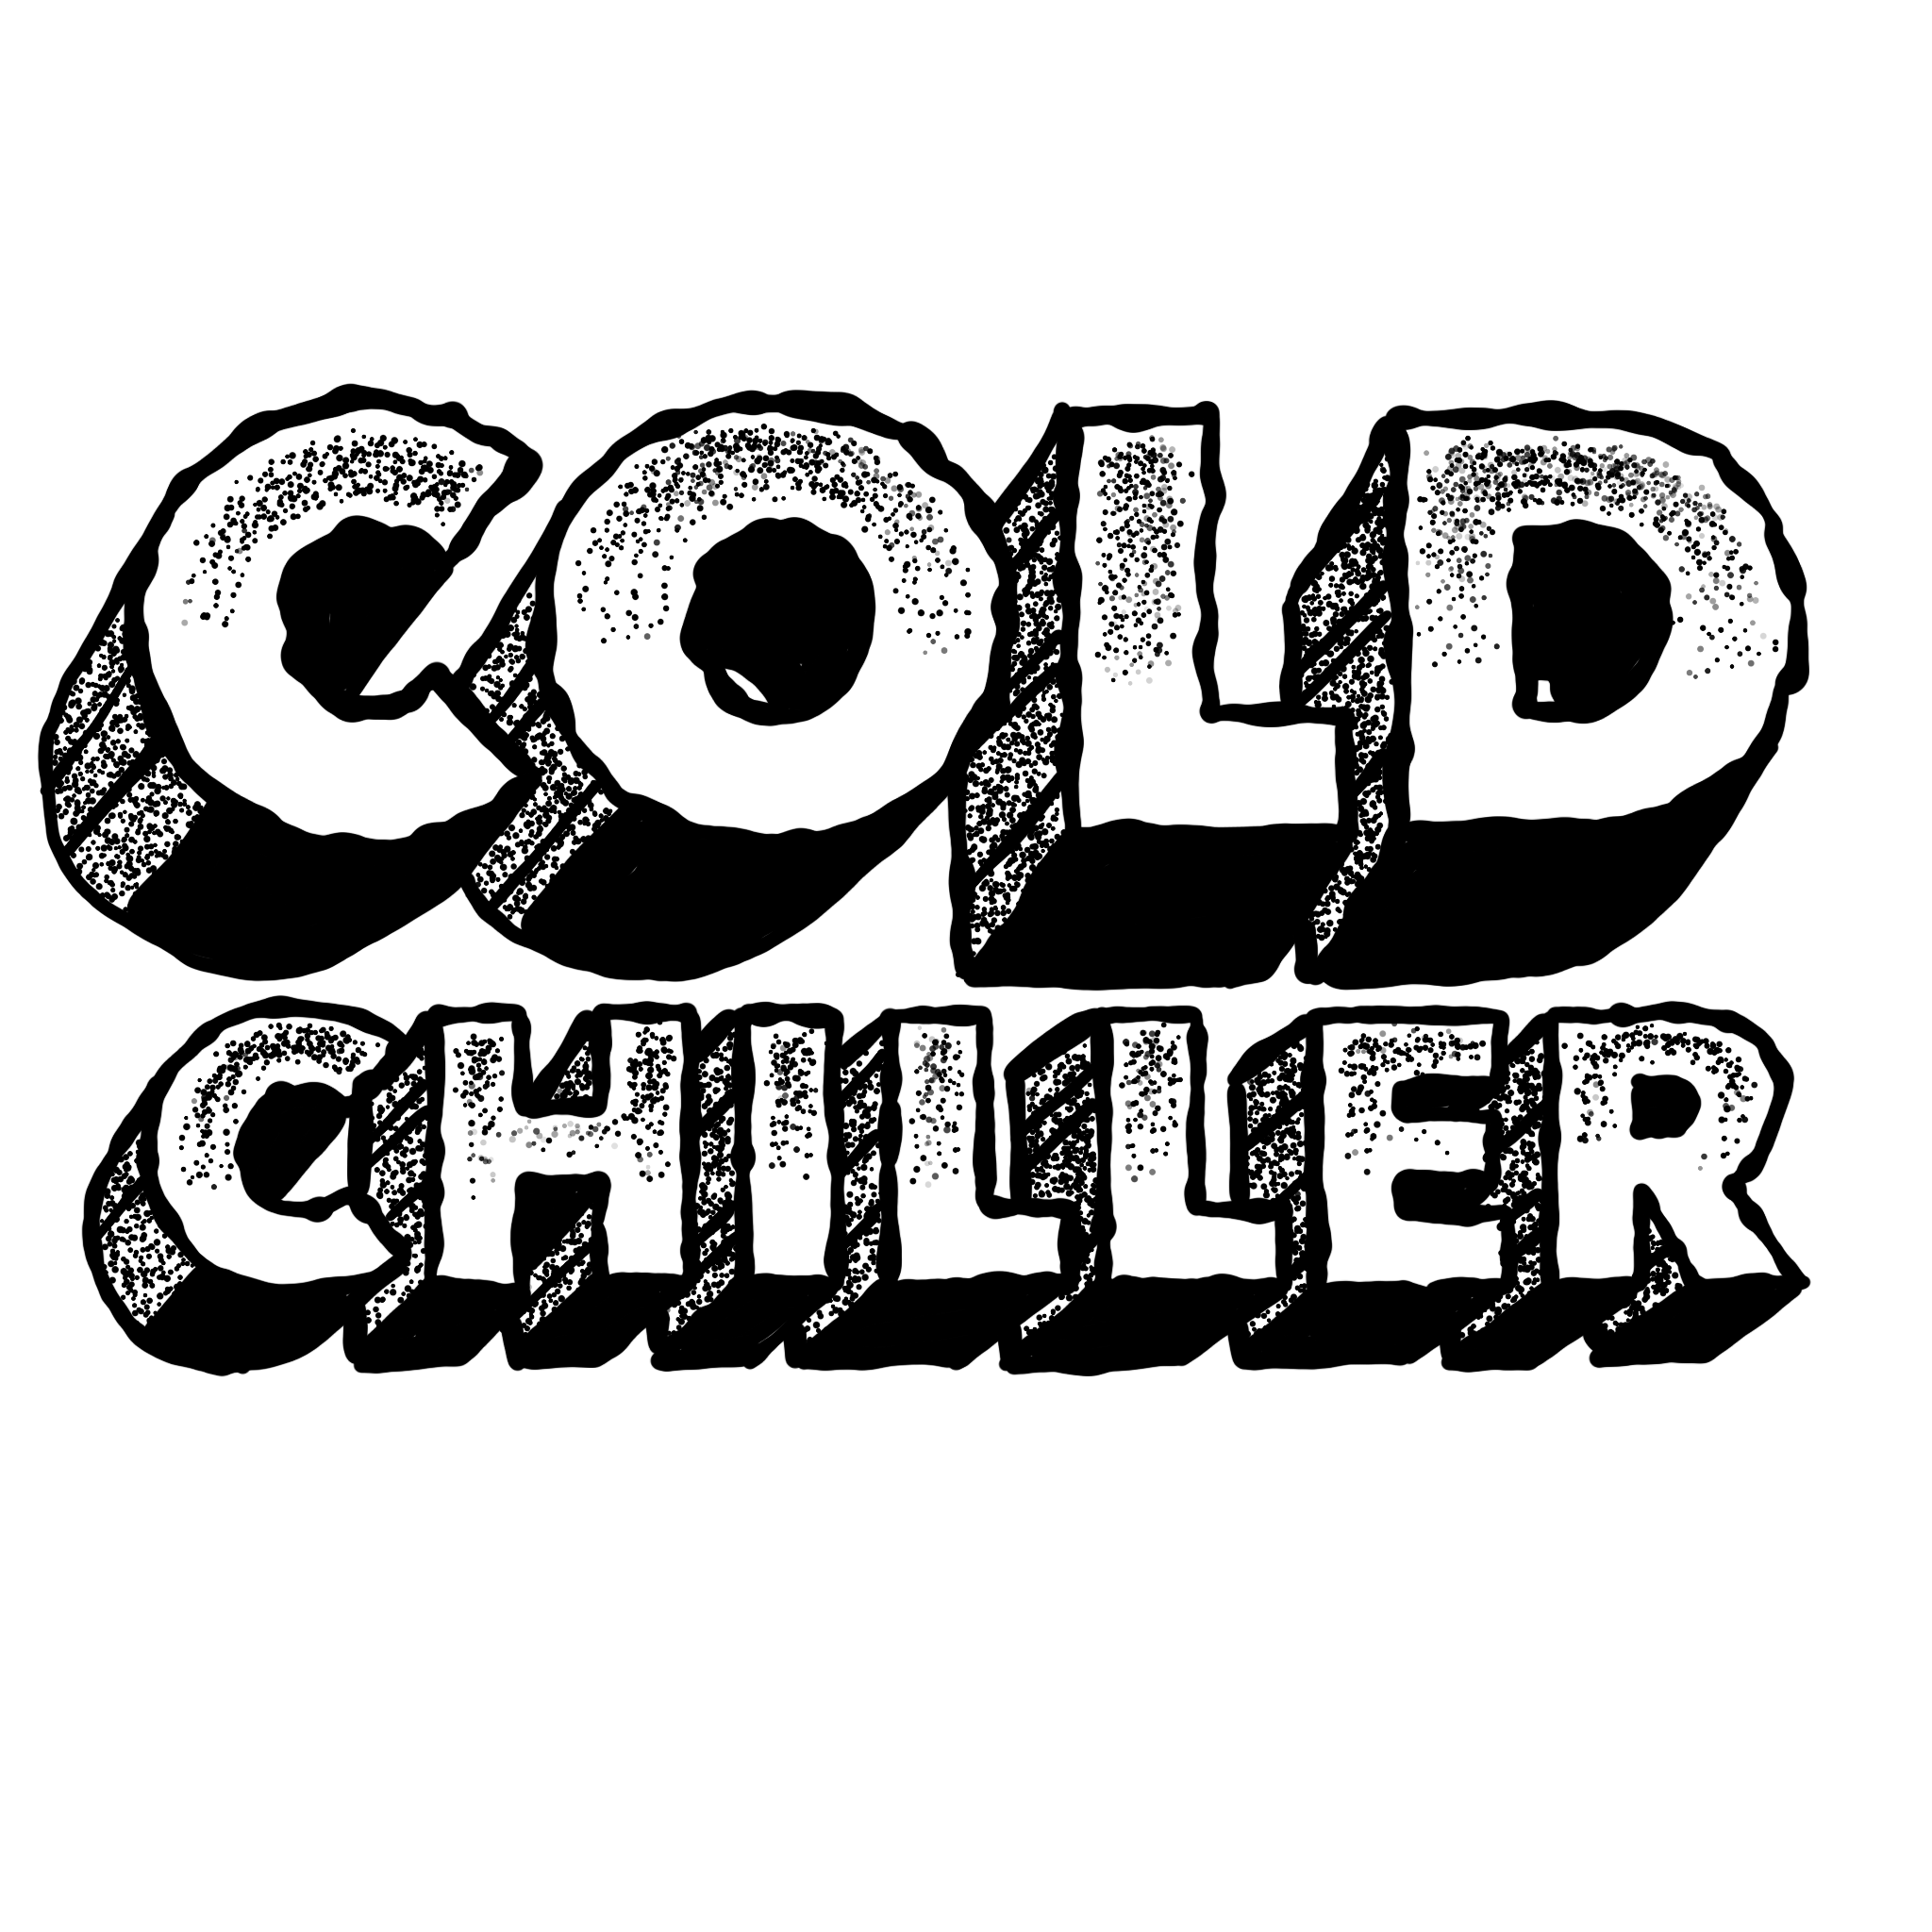 Cold_chiller.png